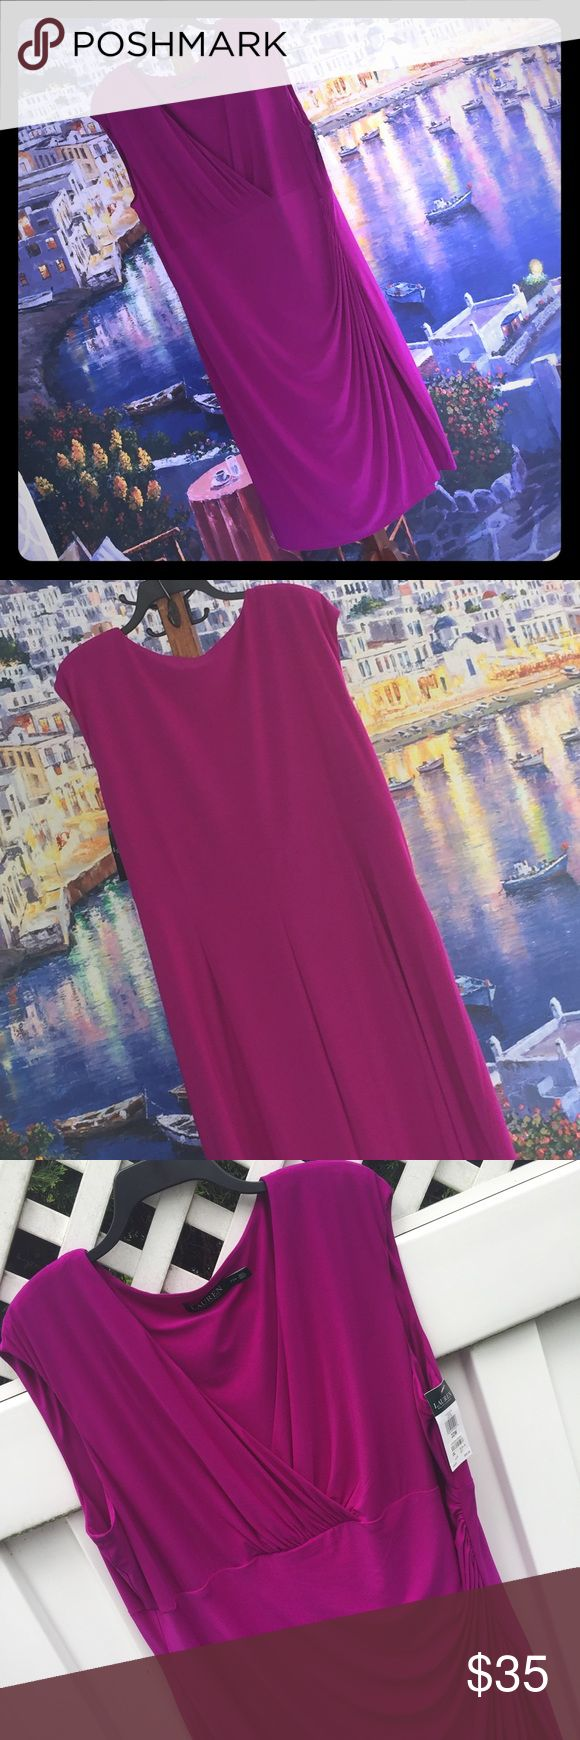 "Faux Wrap Dress Oh so flattering slinky number in a sophisticated magenta. Cap sleeves, shapely seaming. Deep surplice neckline echoes drape of the faux sarong skirt. Stretchy. Machine washable. Would pack like a dream. 44"" long. NWT by Ralph Lauren. Lauren Ralph Lauren Dresses"